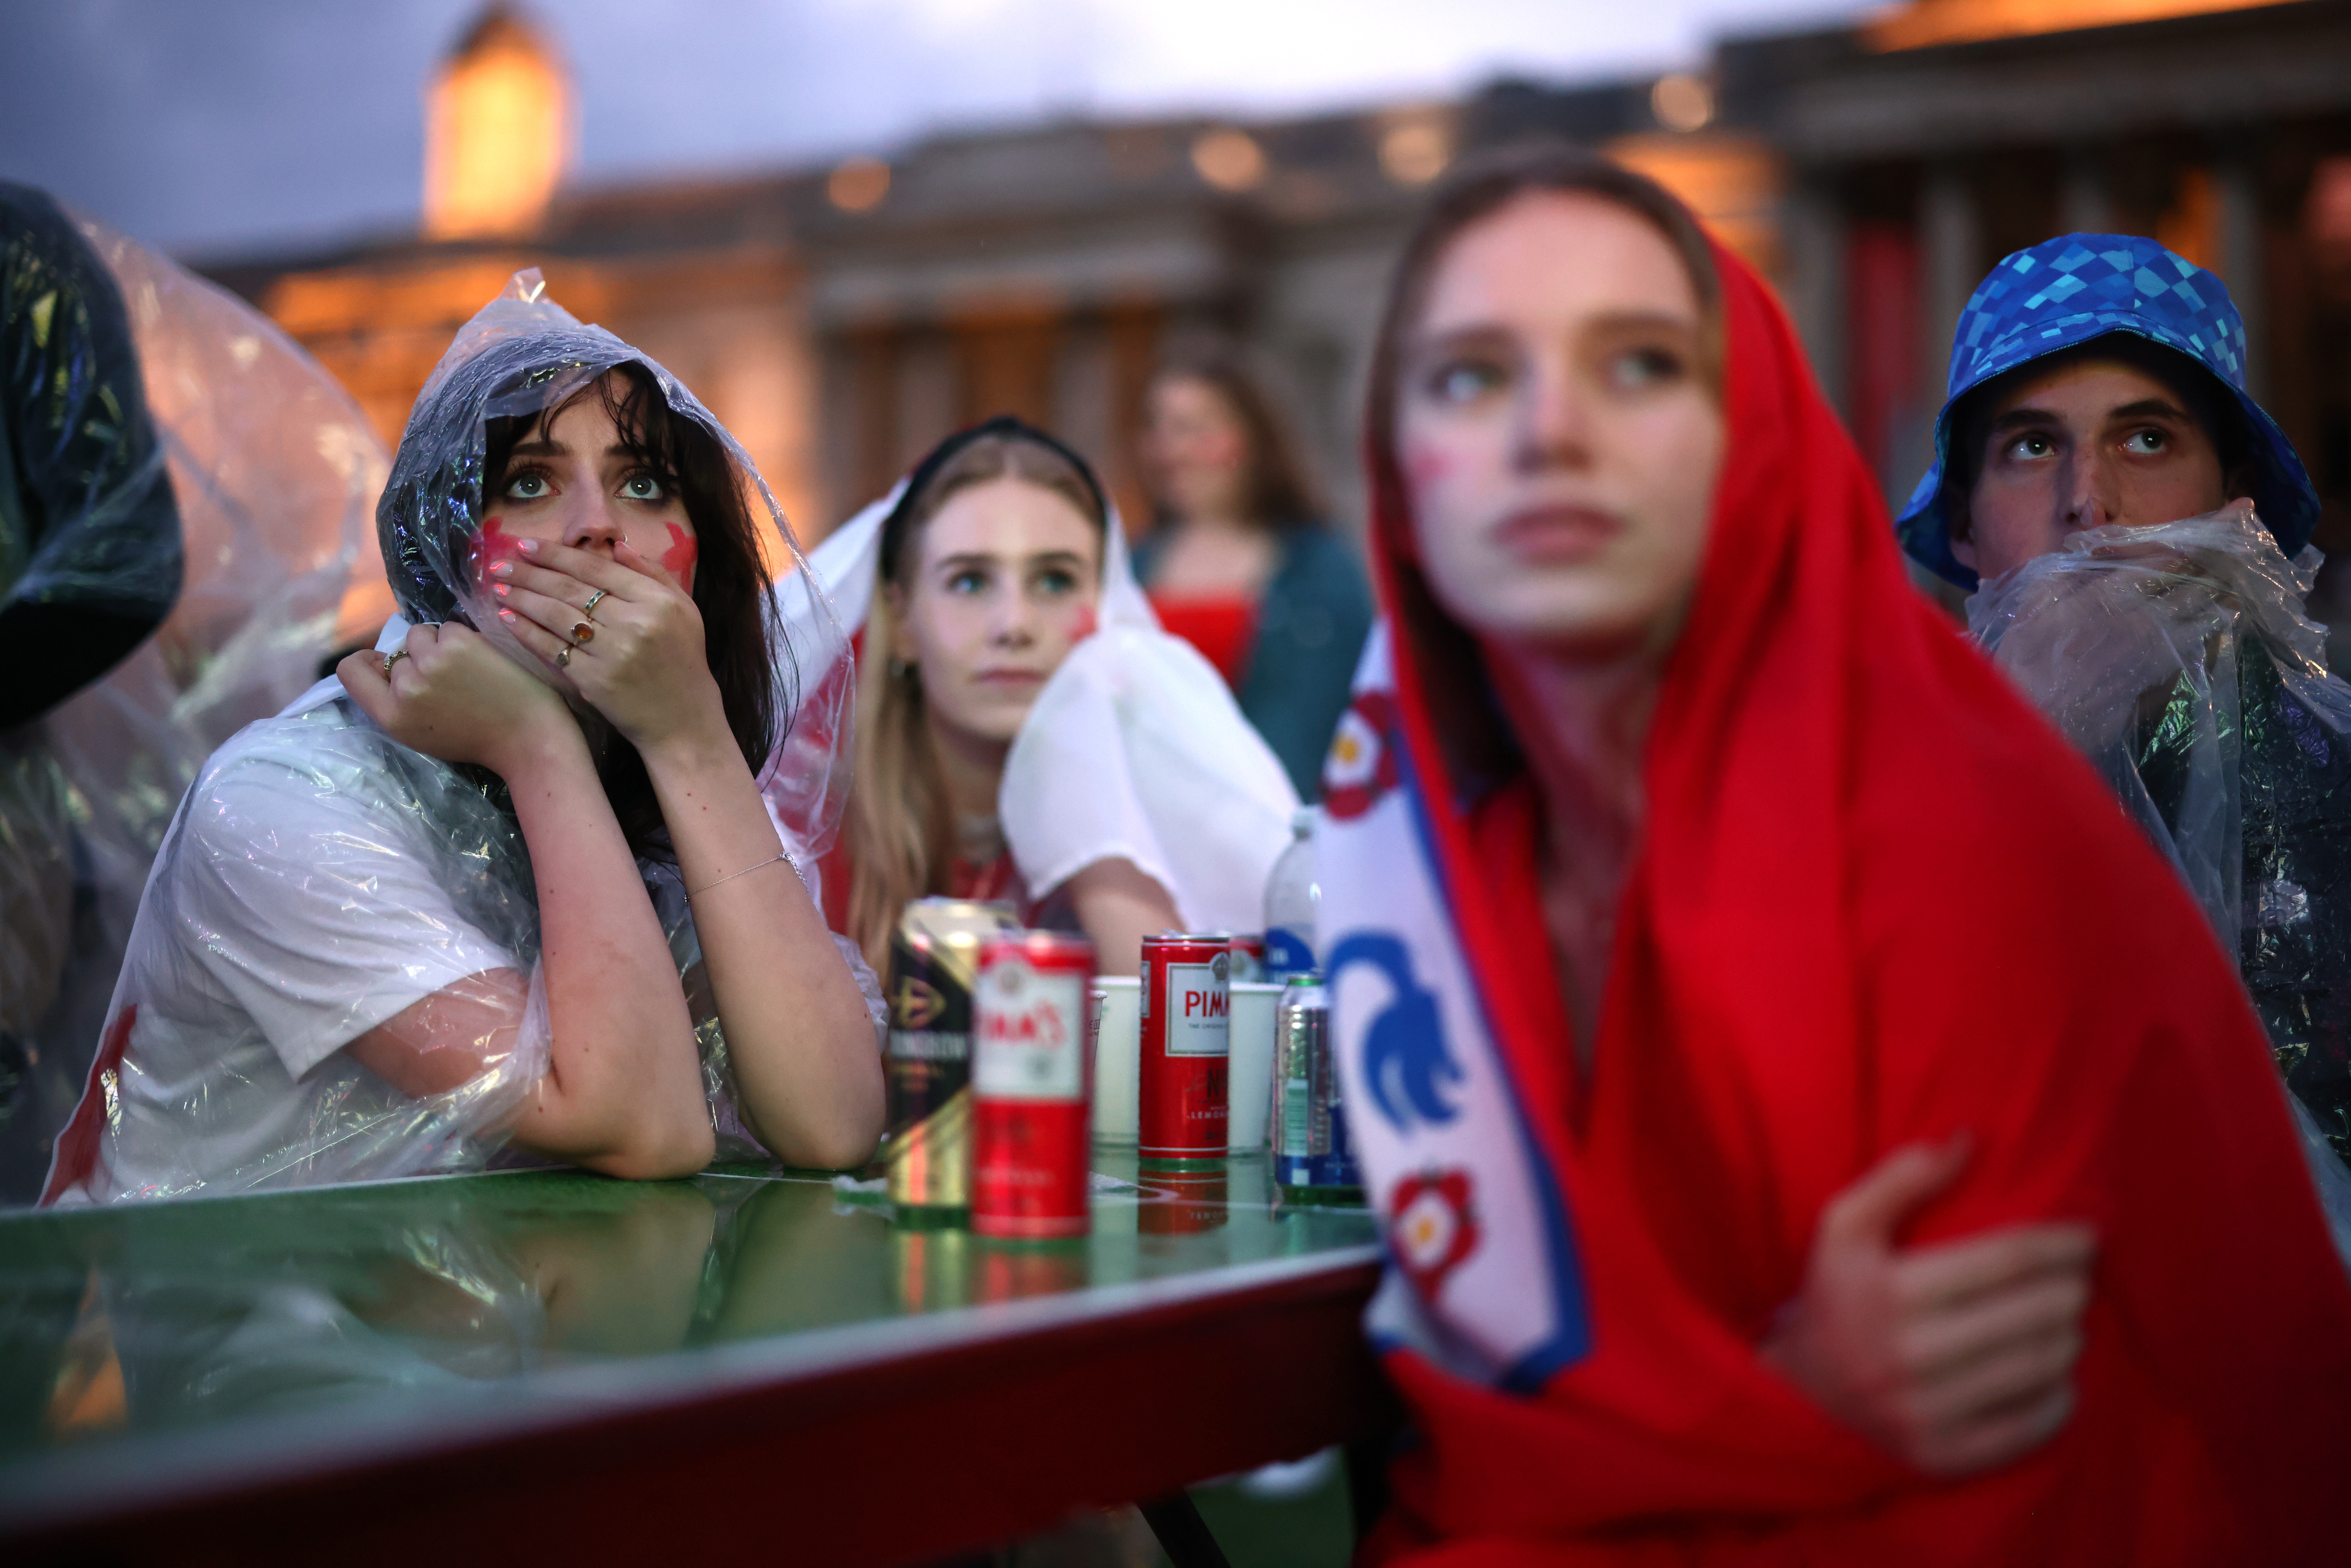 Soccer Football - Euro 2020 - Final - Fans gather for Italy v England - London, Britain - July 11, 2021 England fans react while watching the match at Trafalgar Square REUTERS/Henry Nicholls/File photo